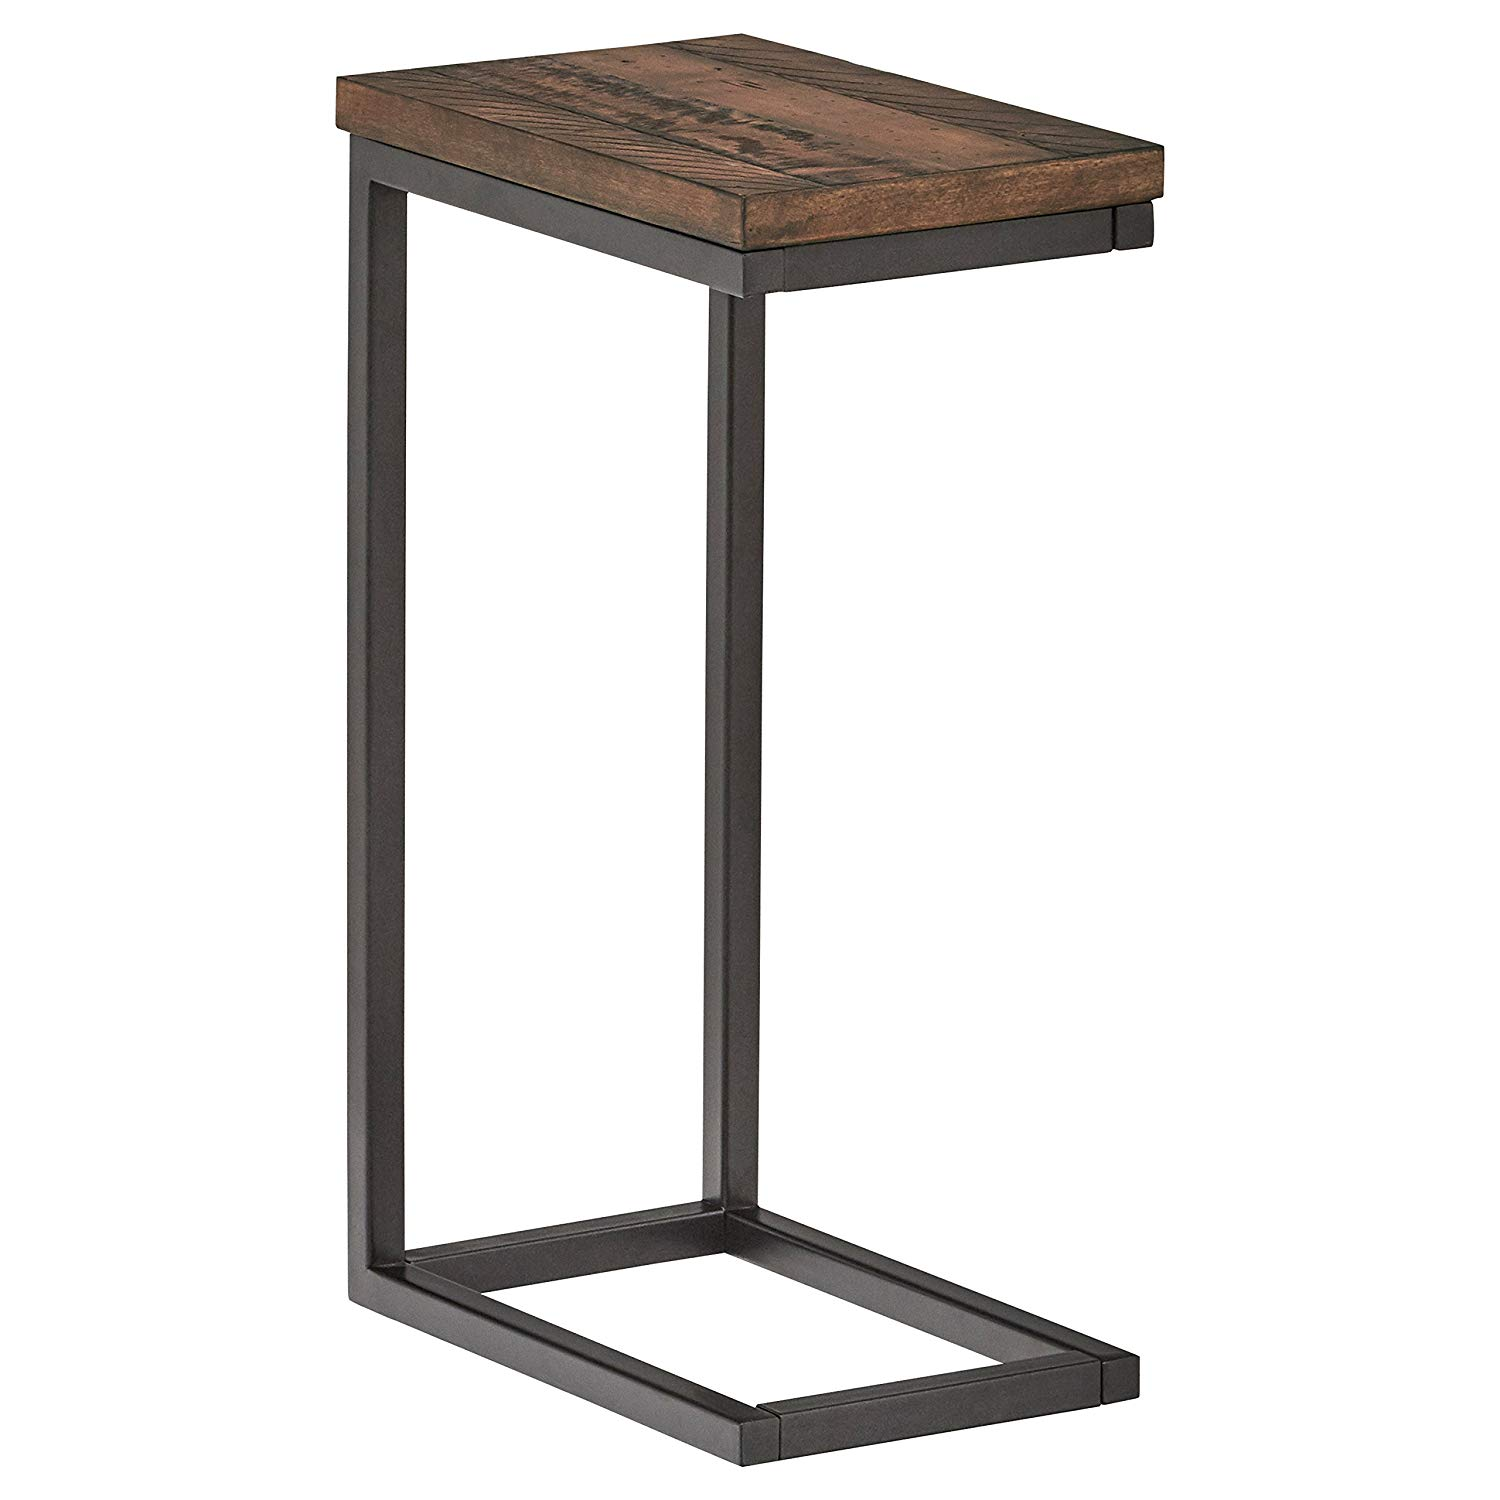 stone beam larson industrial wood metal shaped end accent table walnut kitchen dining lamp with usb port inexpensive round tablecloths grey coffee ikea oval side drawer red wine